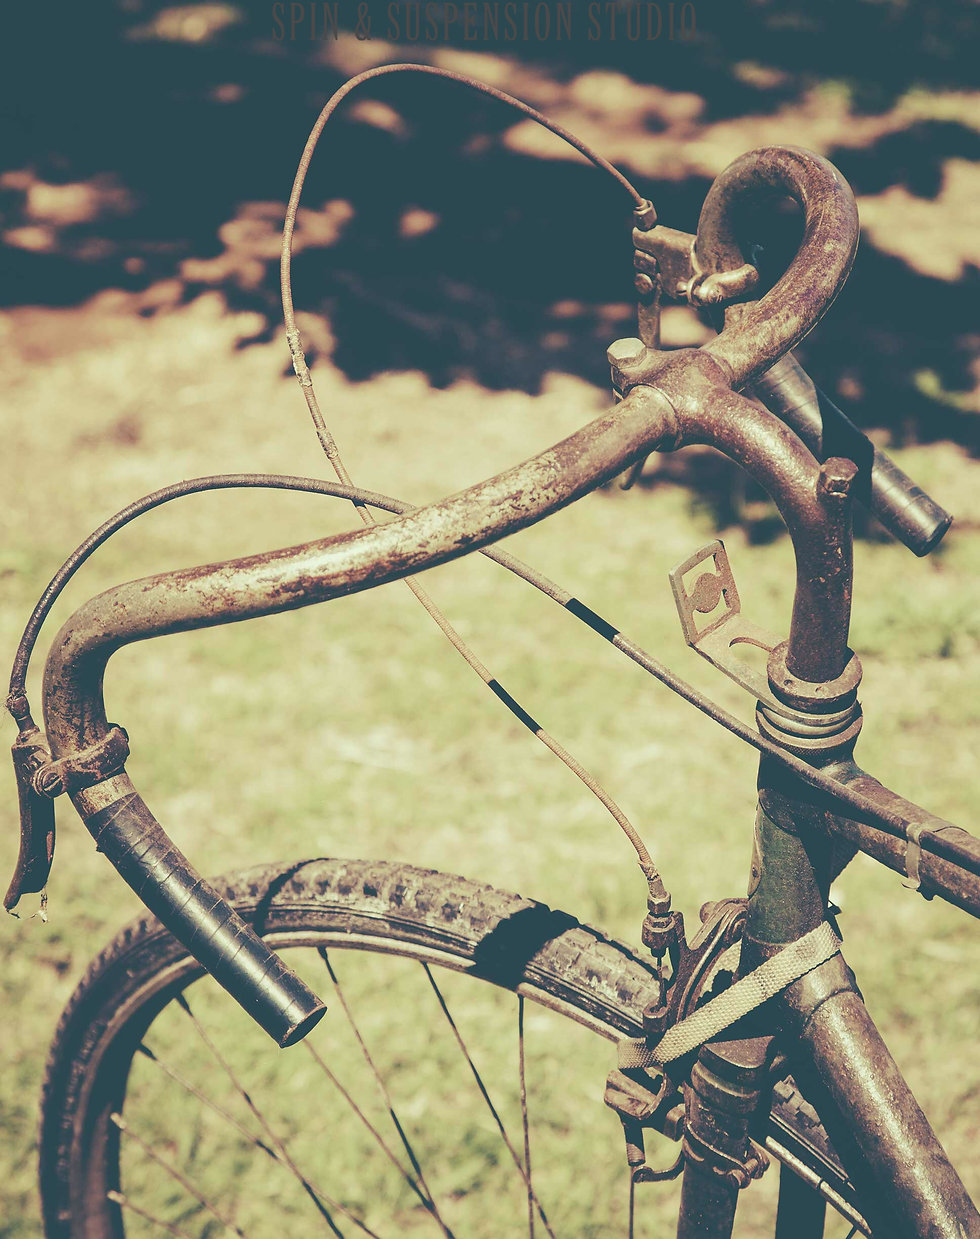 Old bicycle becoming new again